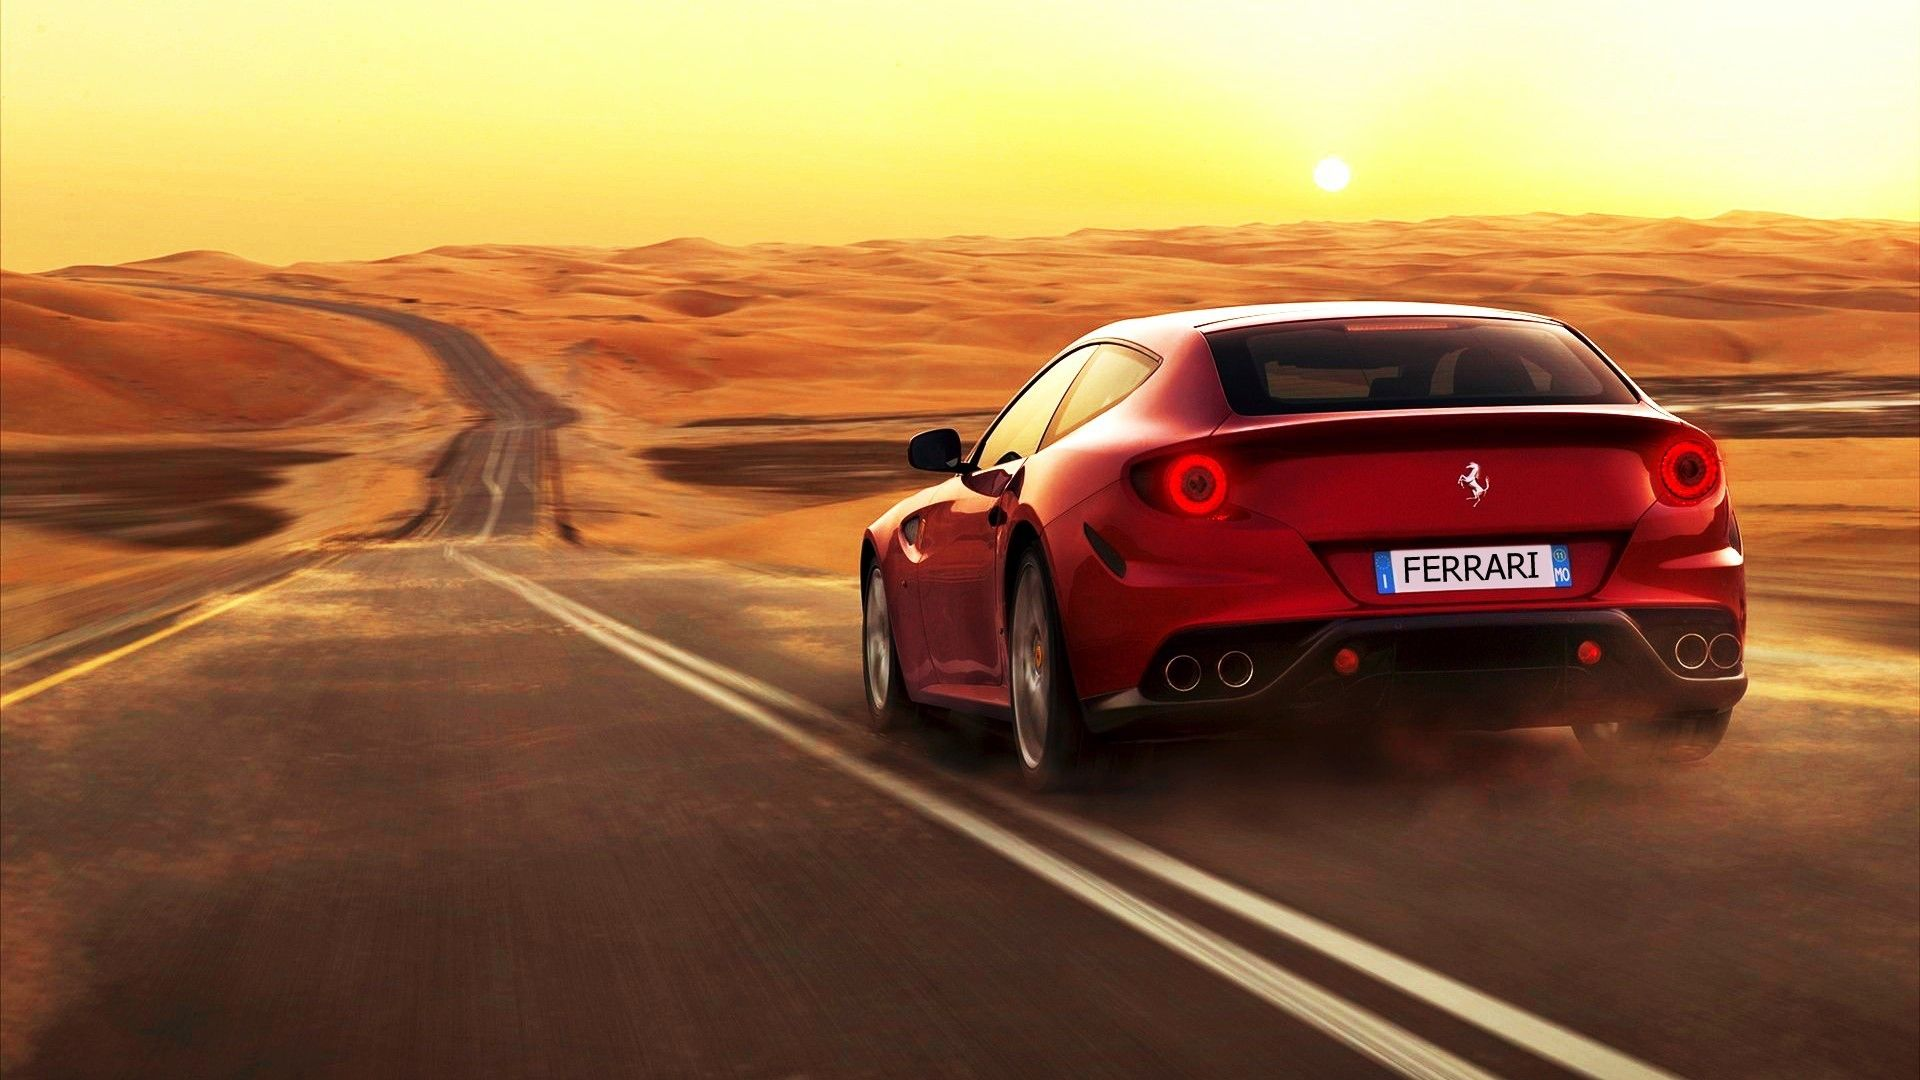 Ferrari Wallpaper High Resolution Vehicles Wallpapers